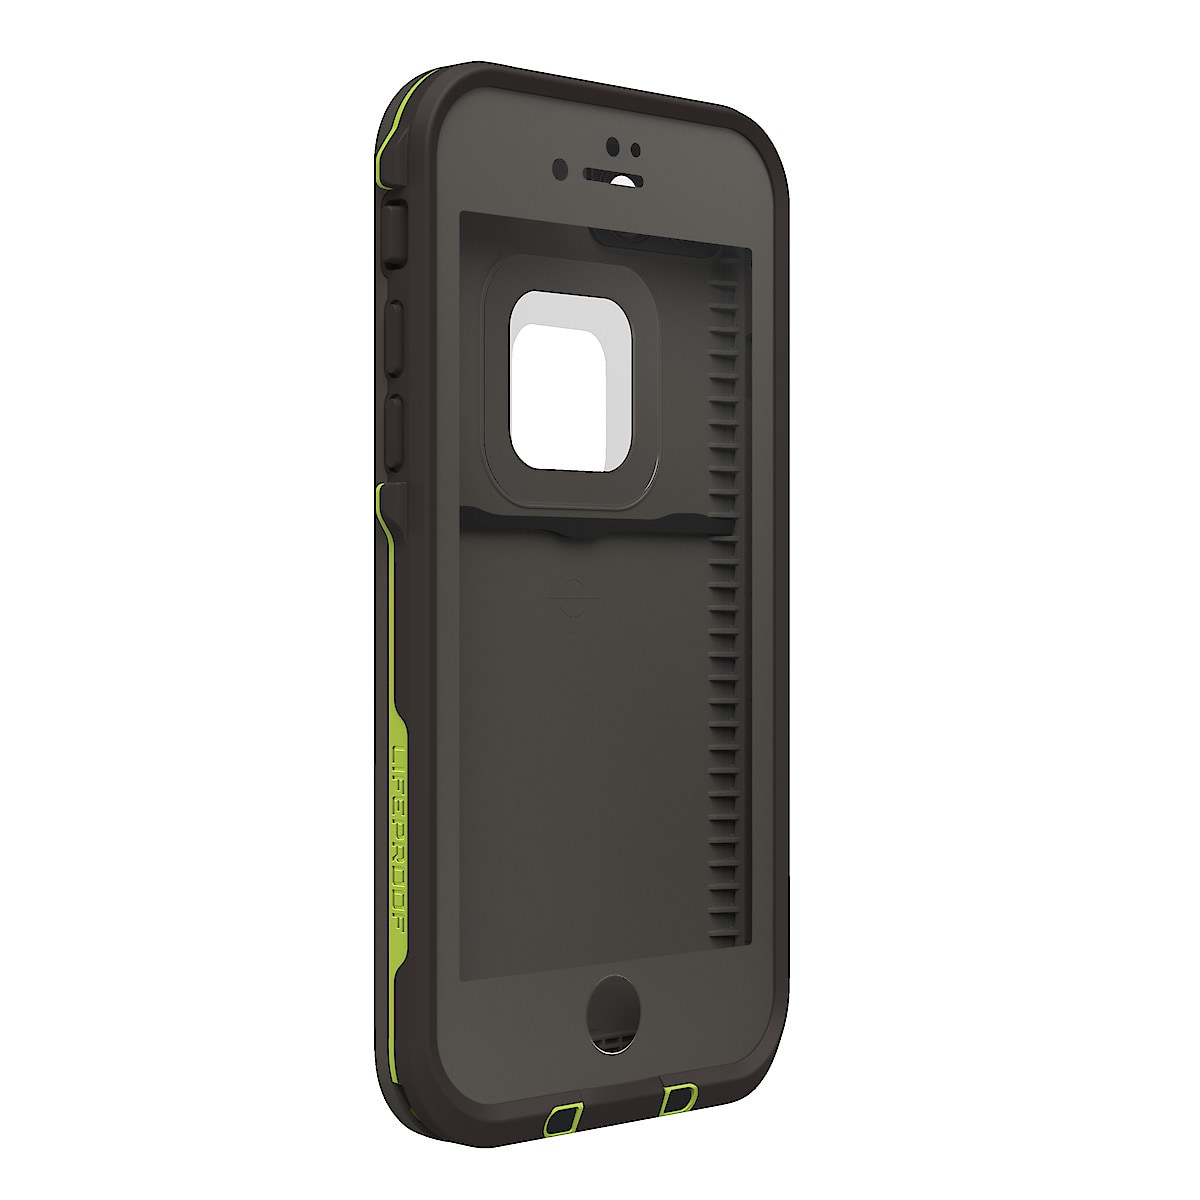 Kuori iPhone 7, Lifeproof Fre